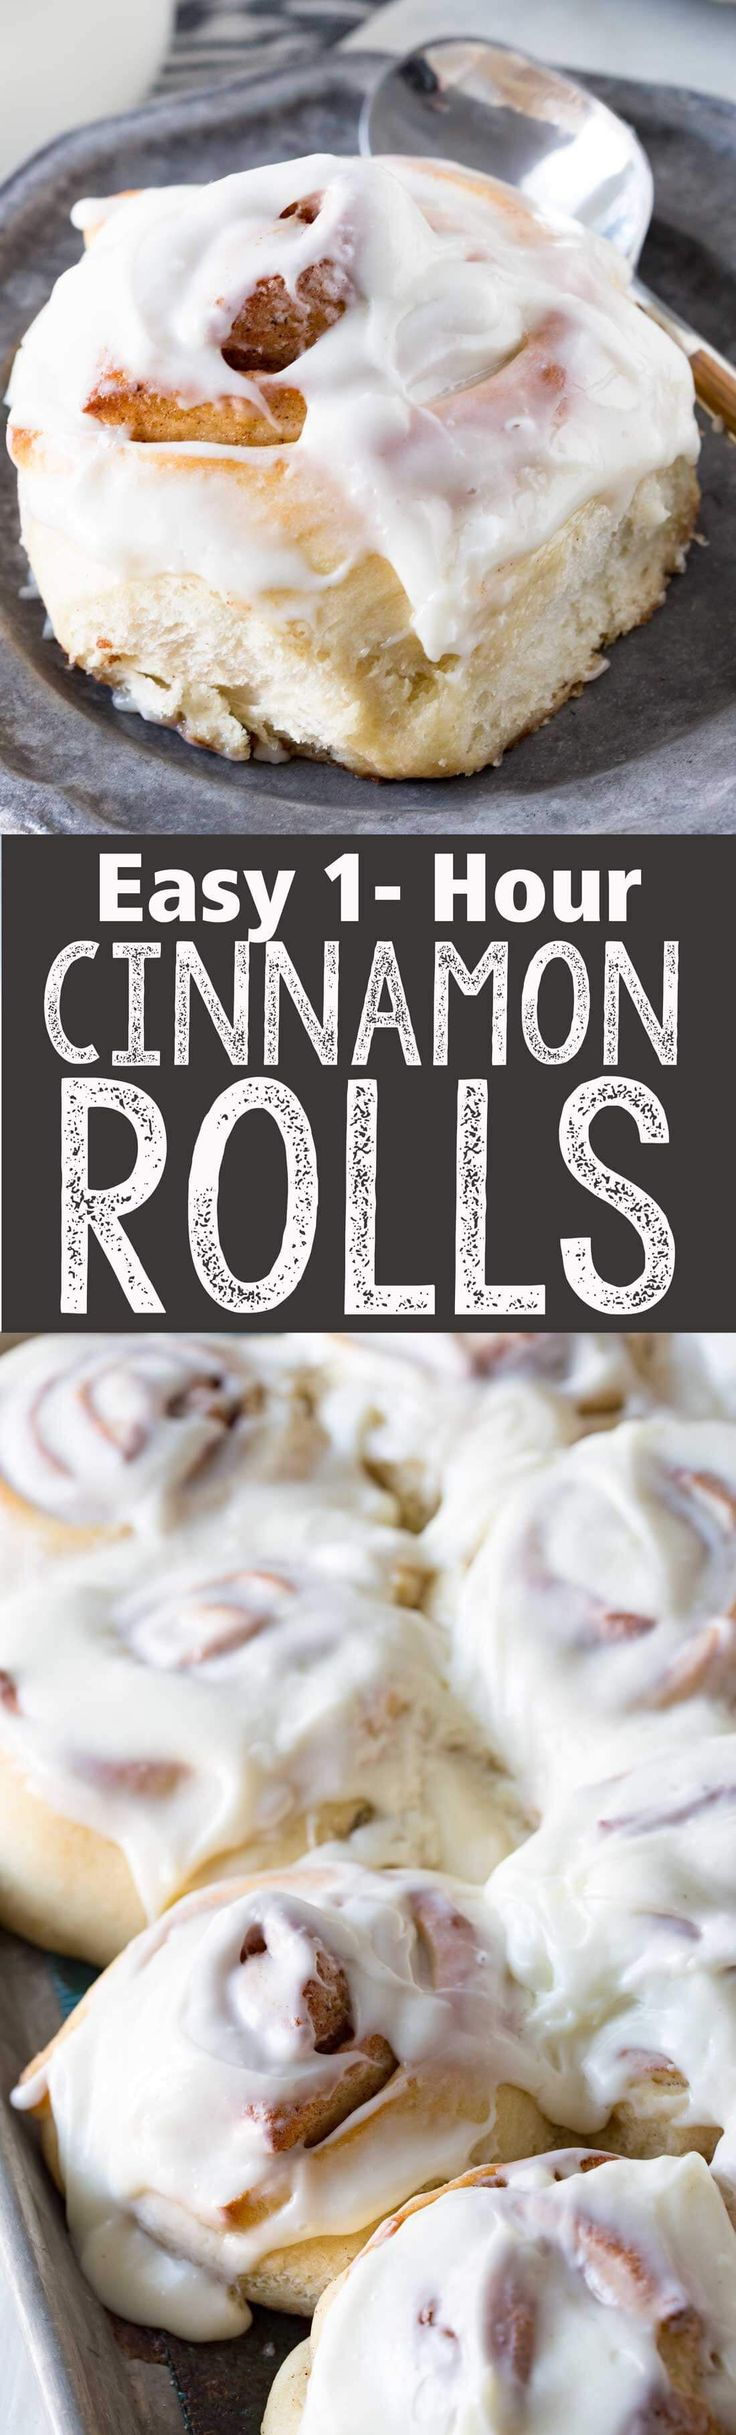 These are gone so fast at my house! Good things they are so easy to make! 1 hour Cinnamon Rolls